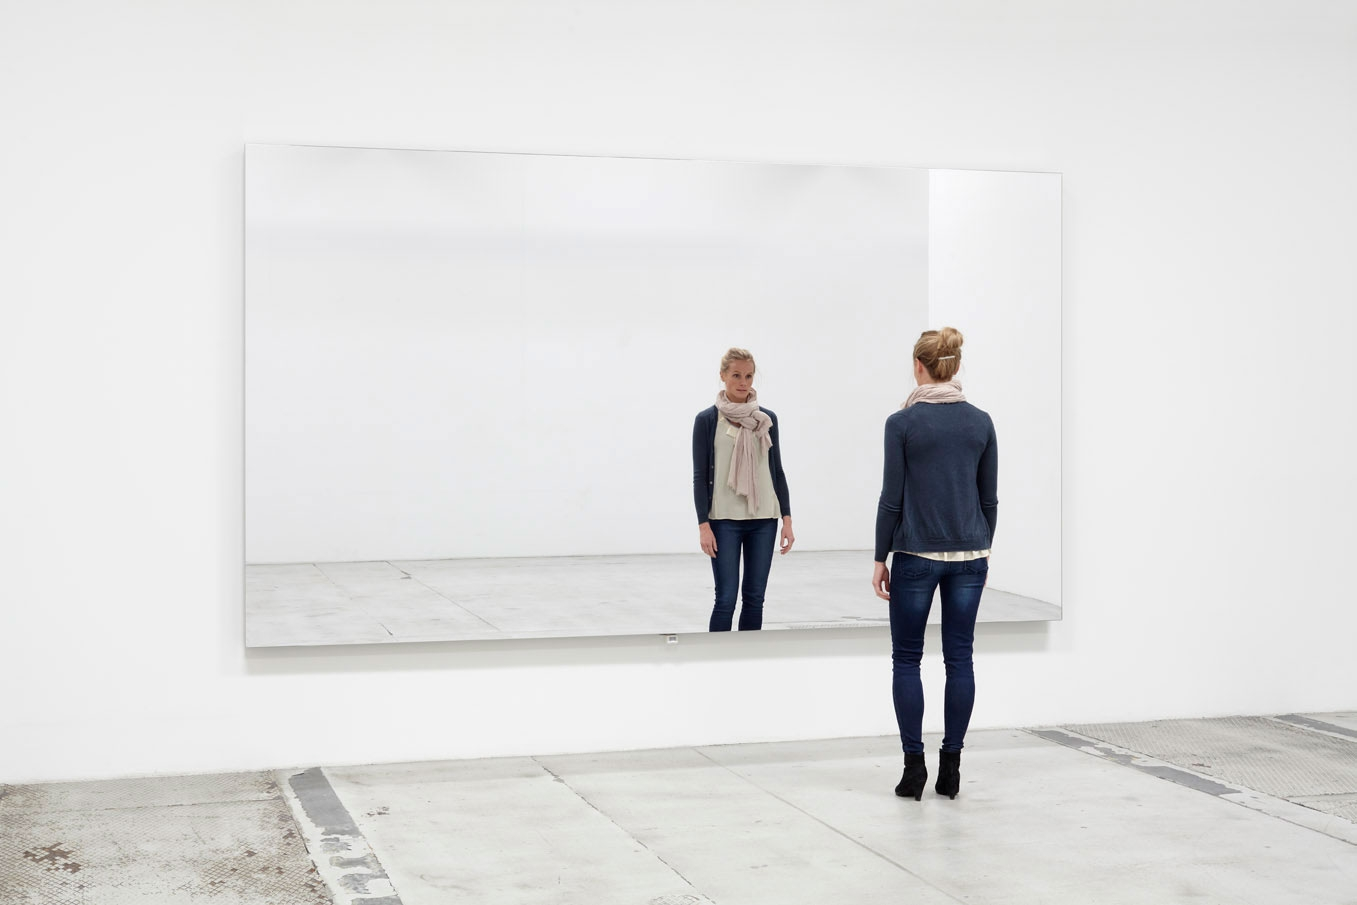 Mirror Wall - Jeppe Hein 2009 - jeppehein.net     A large mirror is mounted on the wall. As visitors enter the space, the surface of the mirror begins to flutter in a subtle wave-like motion. Visitors facing the mirror become irritated by the vibrating reflection of themselves and their surroundings. This sensation causes not only a vague feeling of dizziness but also a latent distrust of one's own eyes and spatial perception. As the mirror displays a different picture of the space, viewers question their own position within the room.